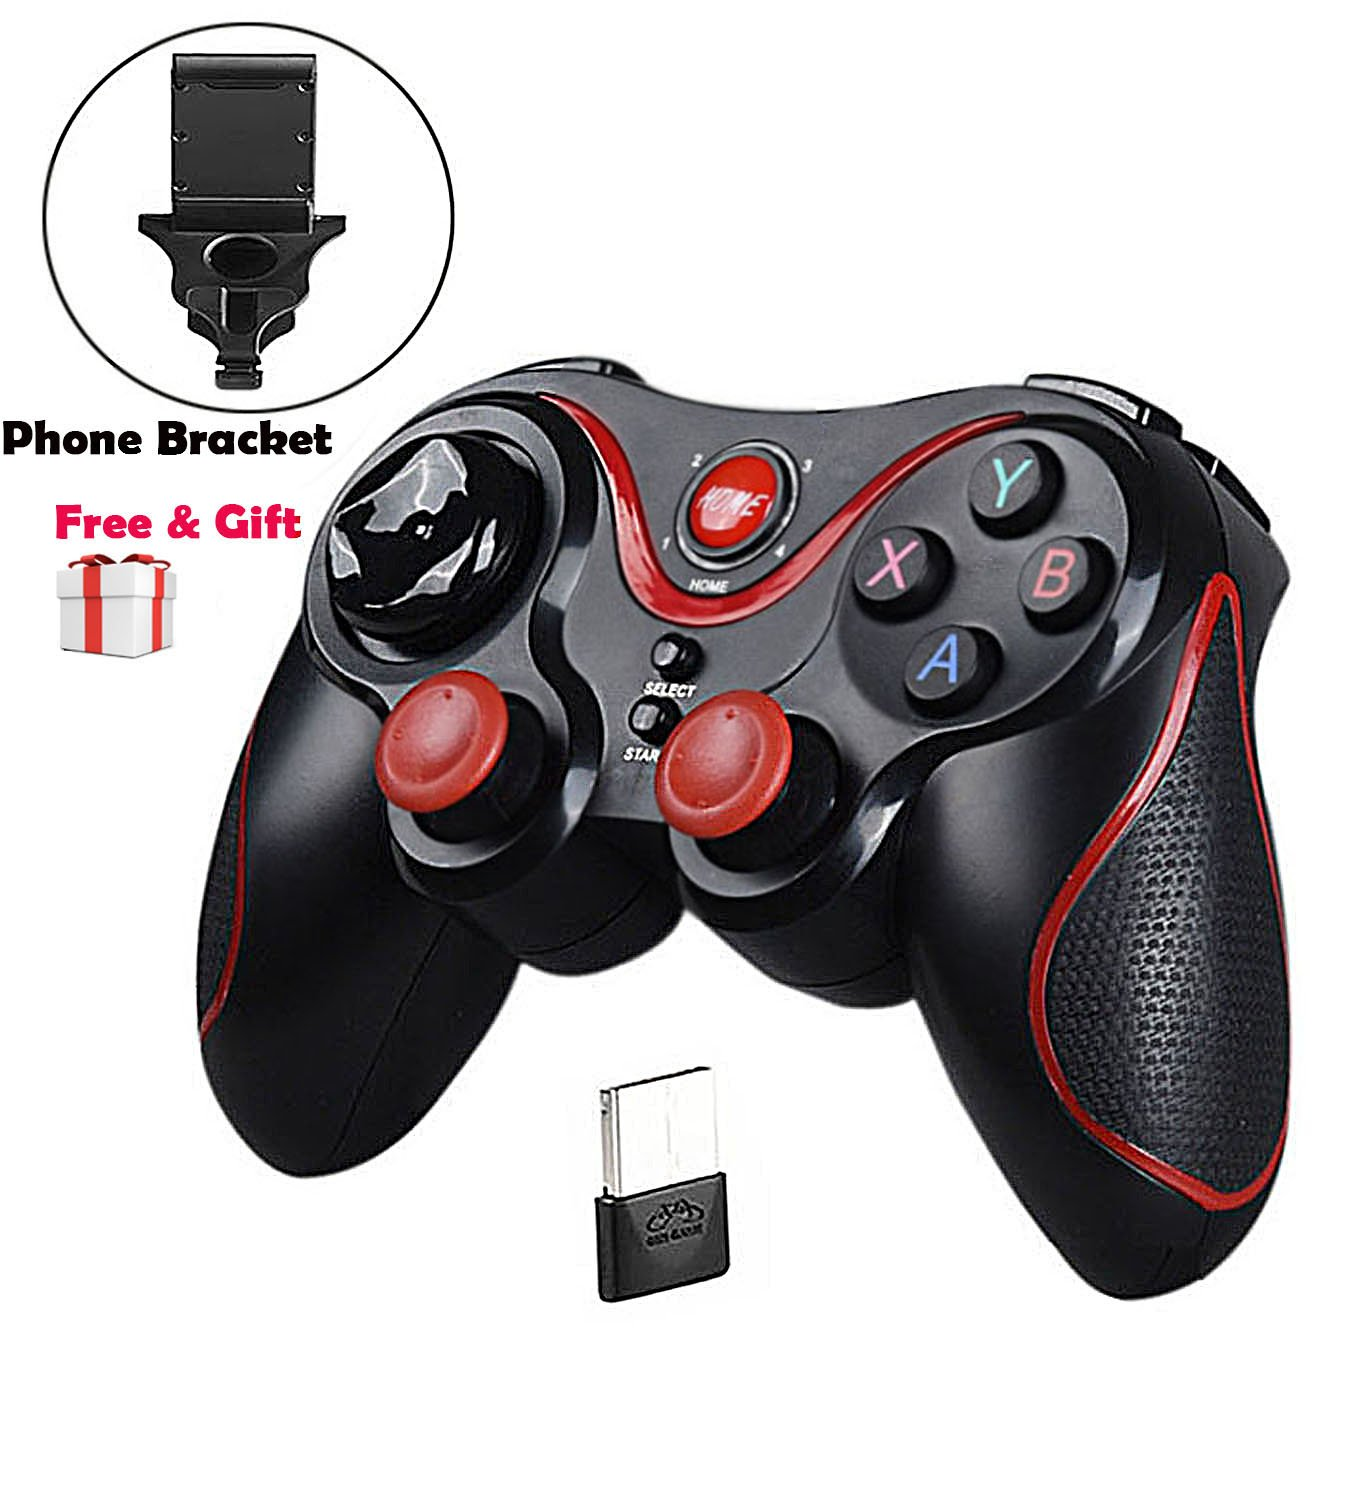 MallTEK Wireless Controller PS3 PC Smartphone Gaming Gamepad Gamepad Kabelloses fü r Android Smartphone PC PS3 Smart TV TV Box TN-Gamepad-1